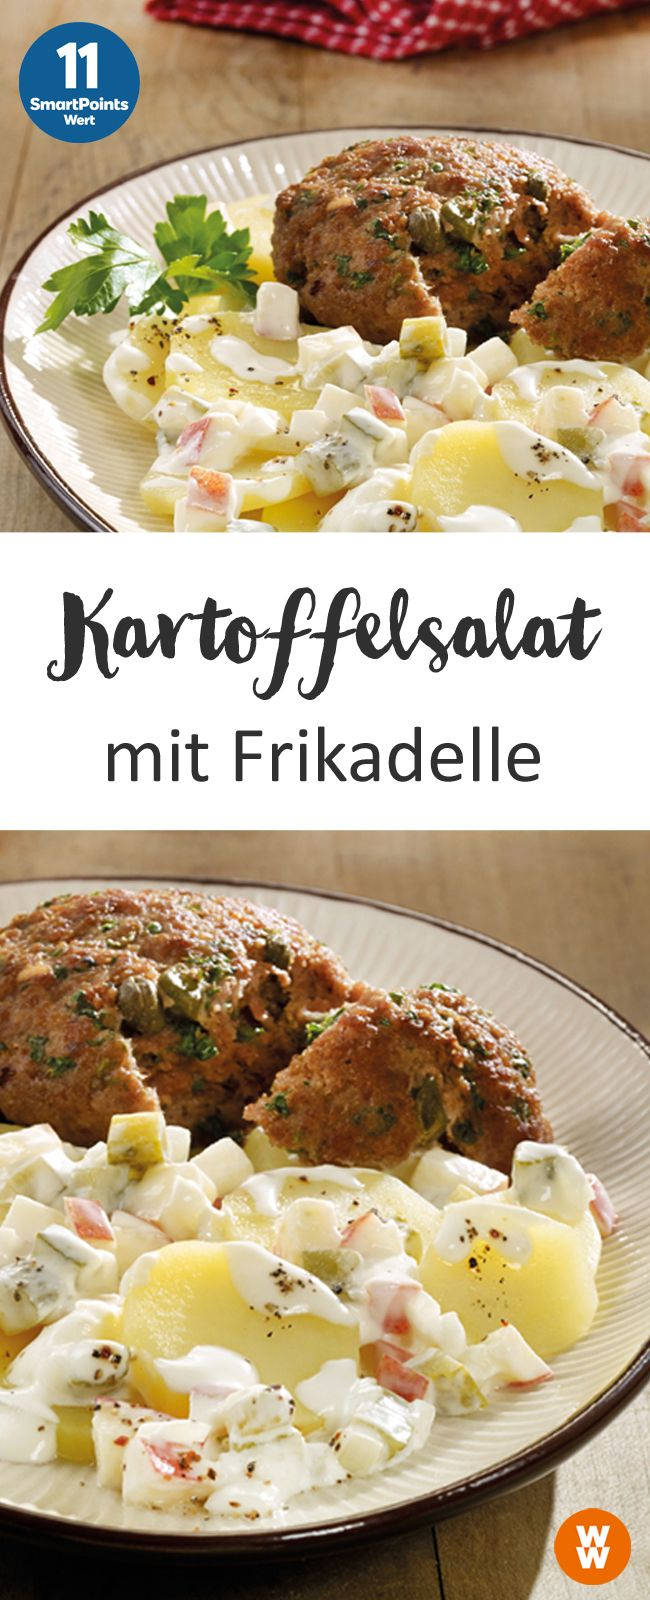 Kartoffelsalat mit Frikadellen | 4 Portionen, 11 SmartPoints/Portion, Weight Watchers, fertig in 50 min.